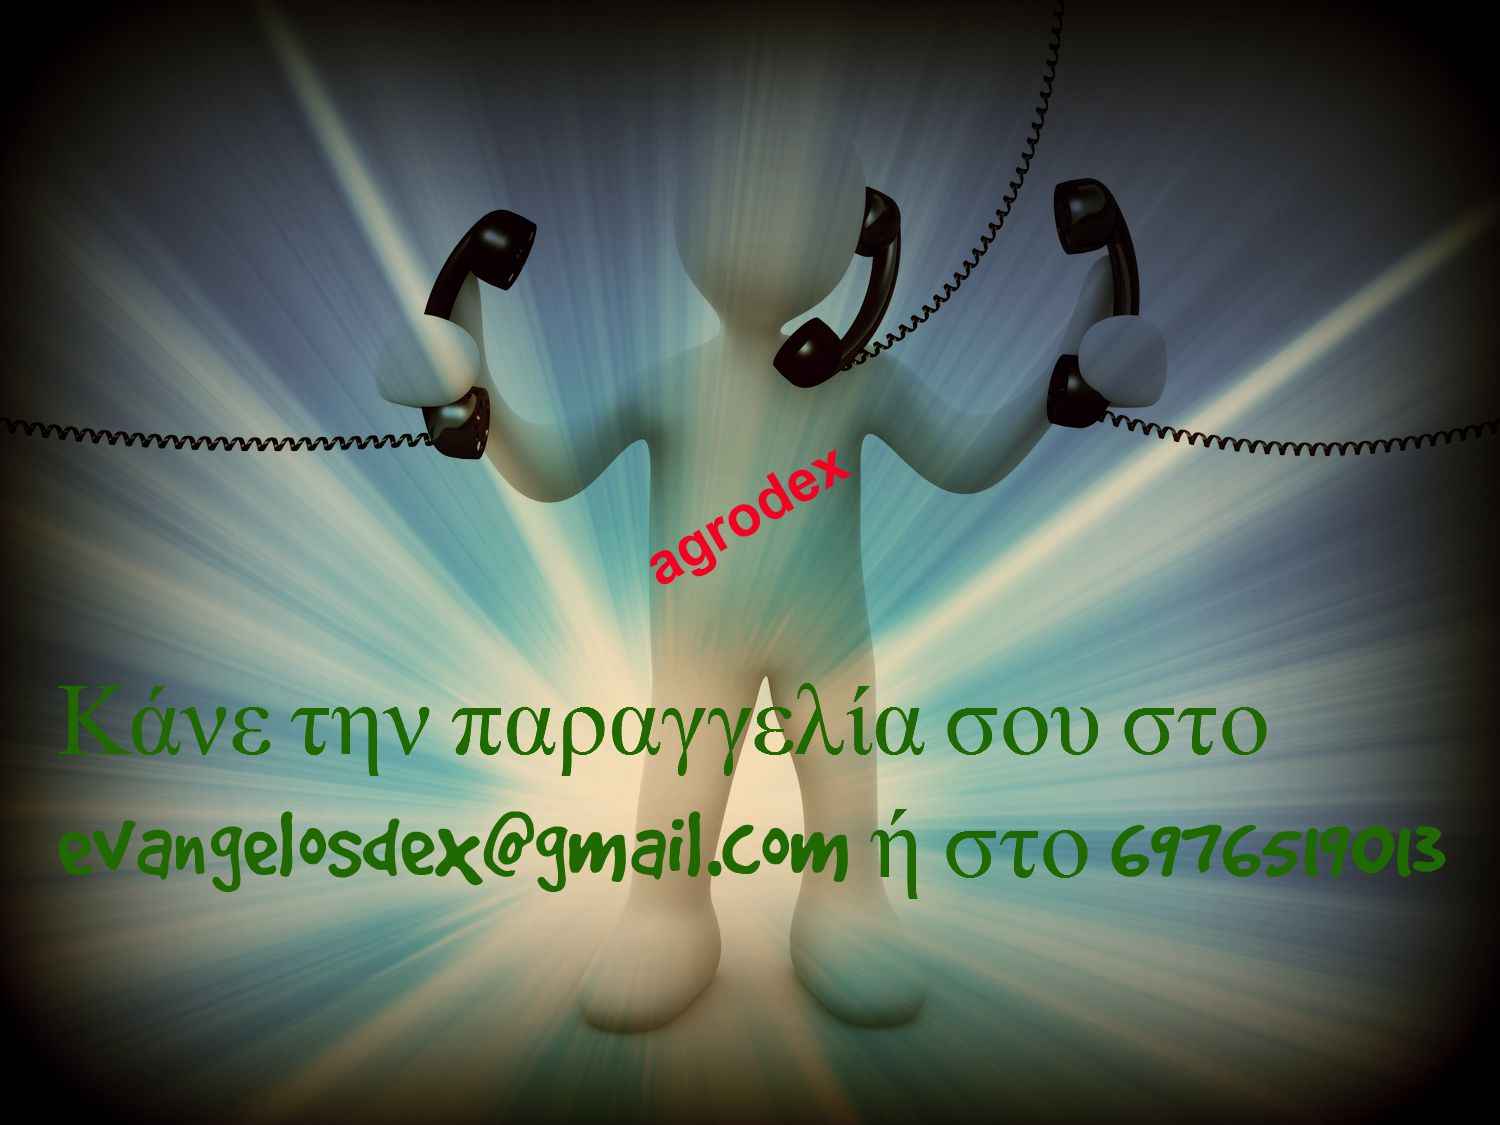 CoNtAcT agrodex